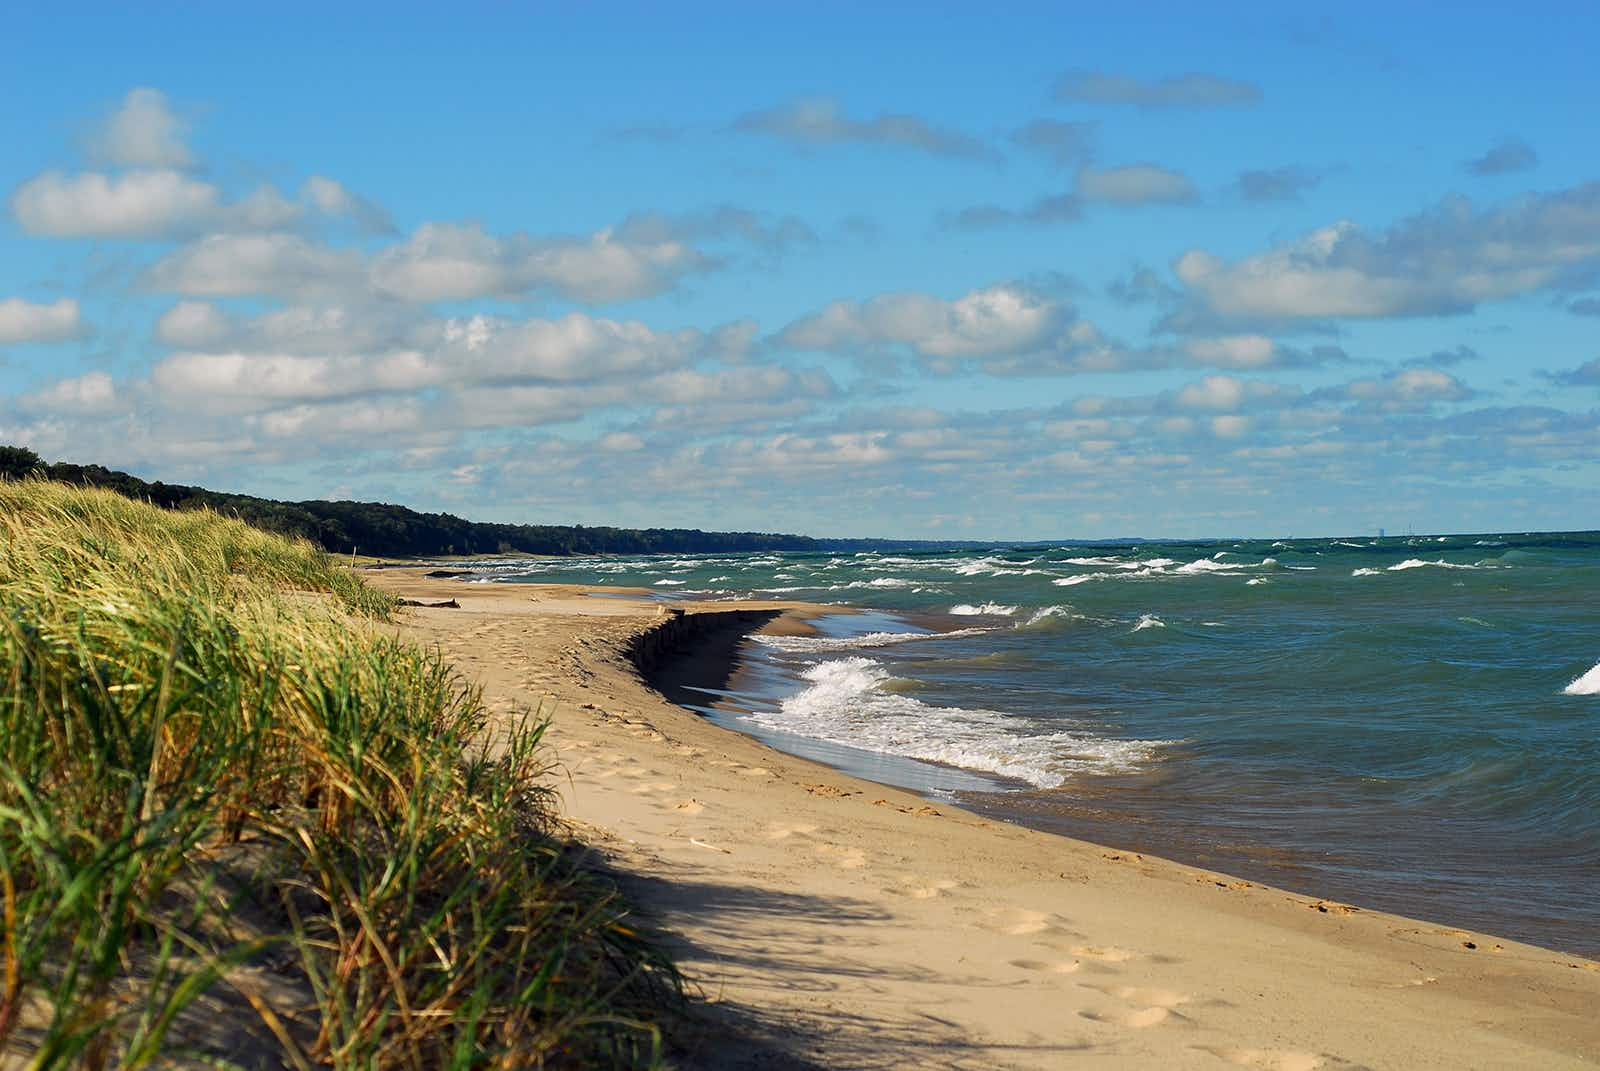 Long shot of curving coastline with white sand and tall grasses, with gentle waves from the blue water of Lake Michigan and a blue partly cloudy sky overhead